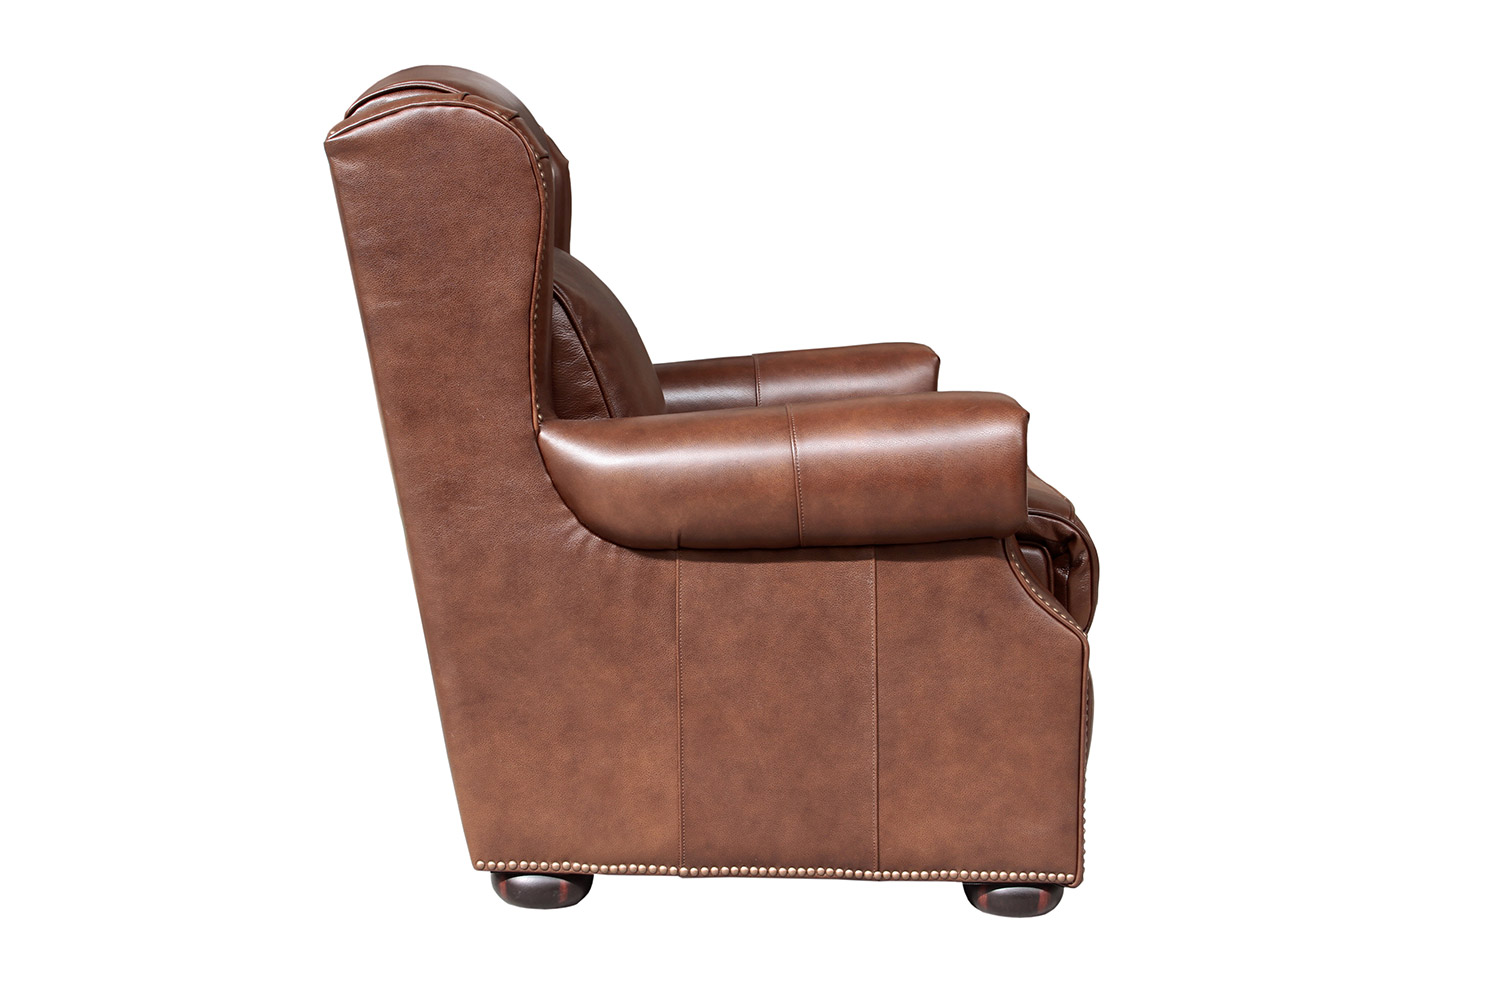 Barcalounger Benwick Power Recliner Chair with Power Head Rest - Shoreham Chocolate/All Leather